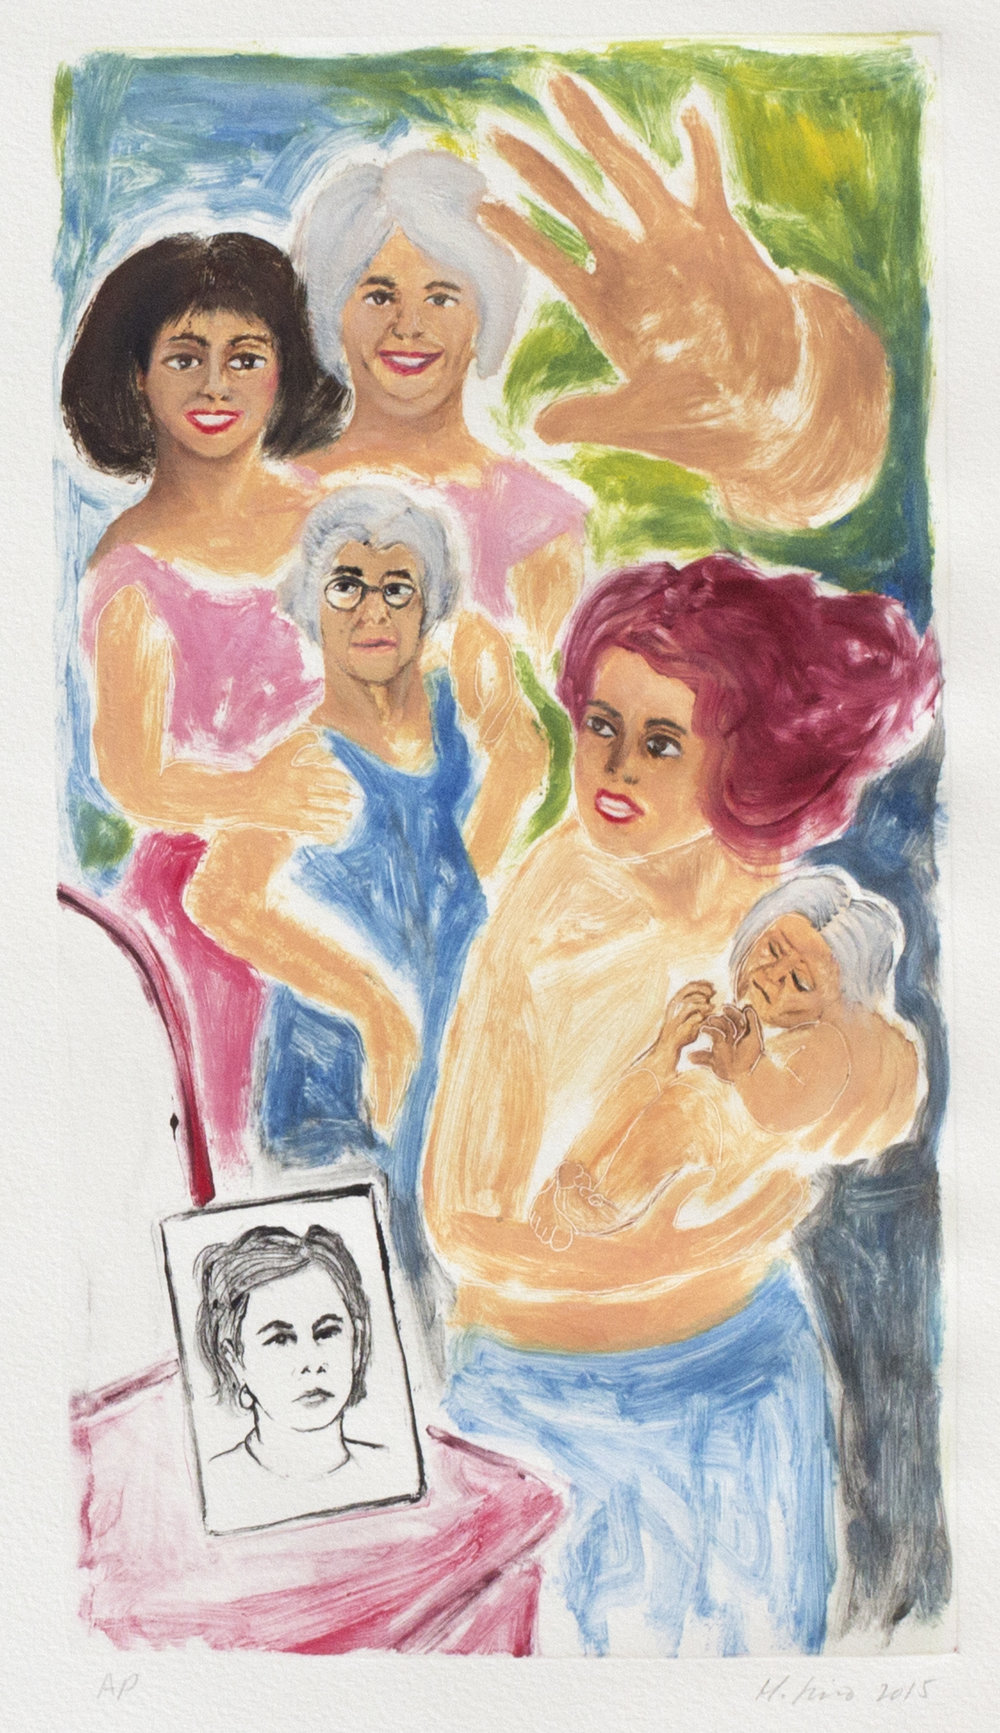 Autorretrato con mis madres/Self-portrait with My Mothers, 2015